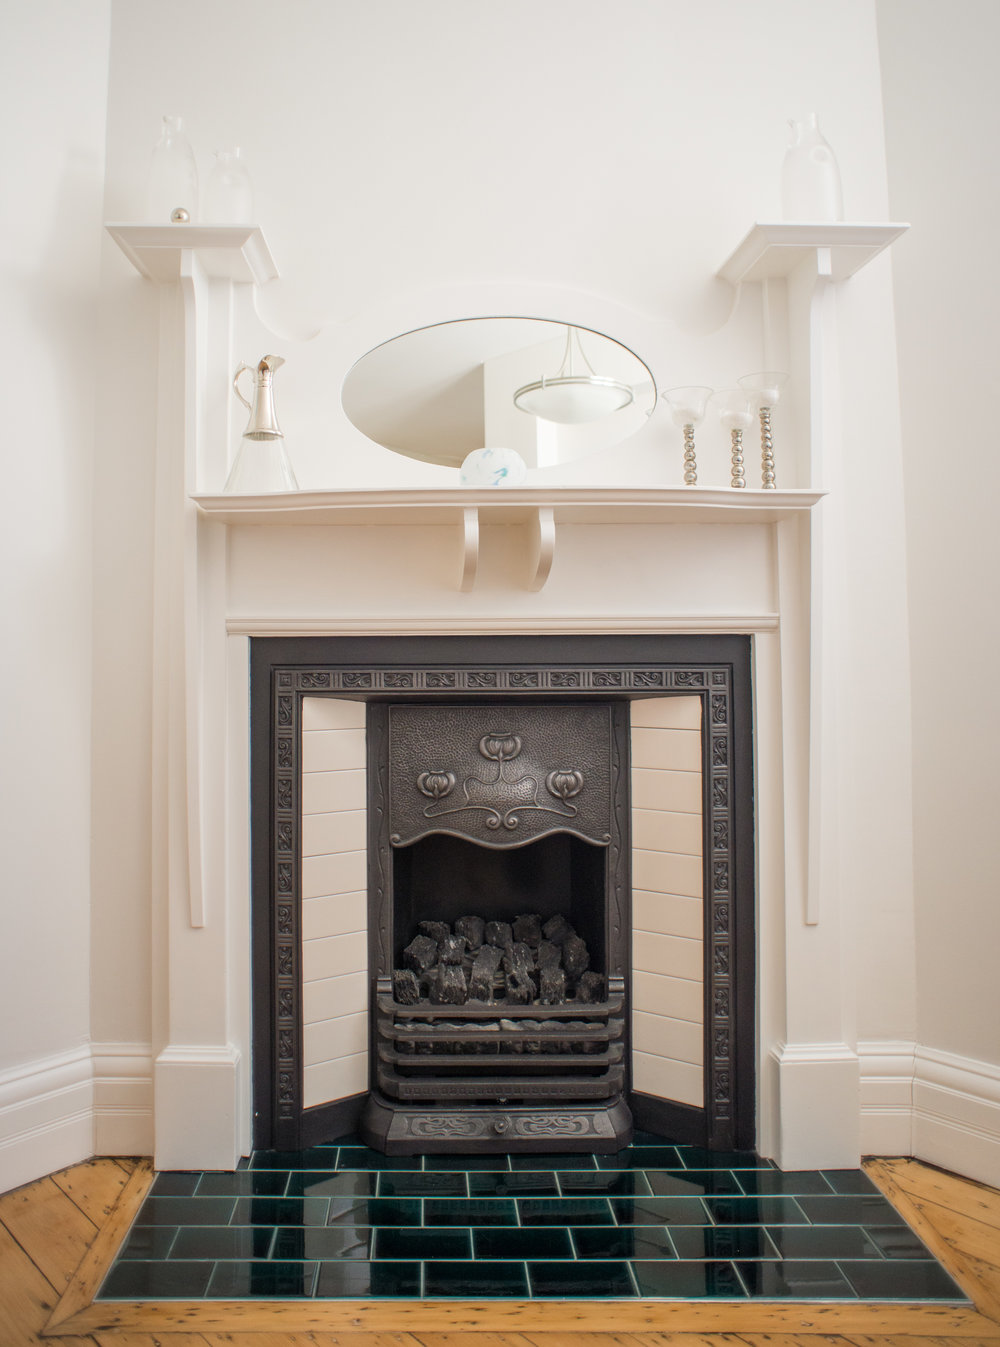 Painted fireplace in a Mosman home